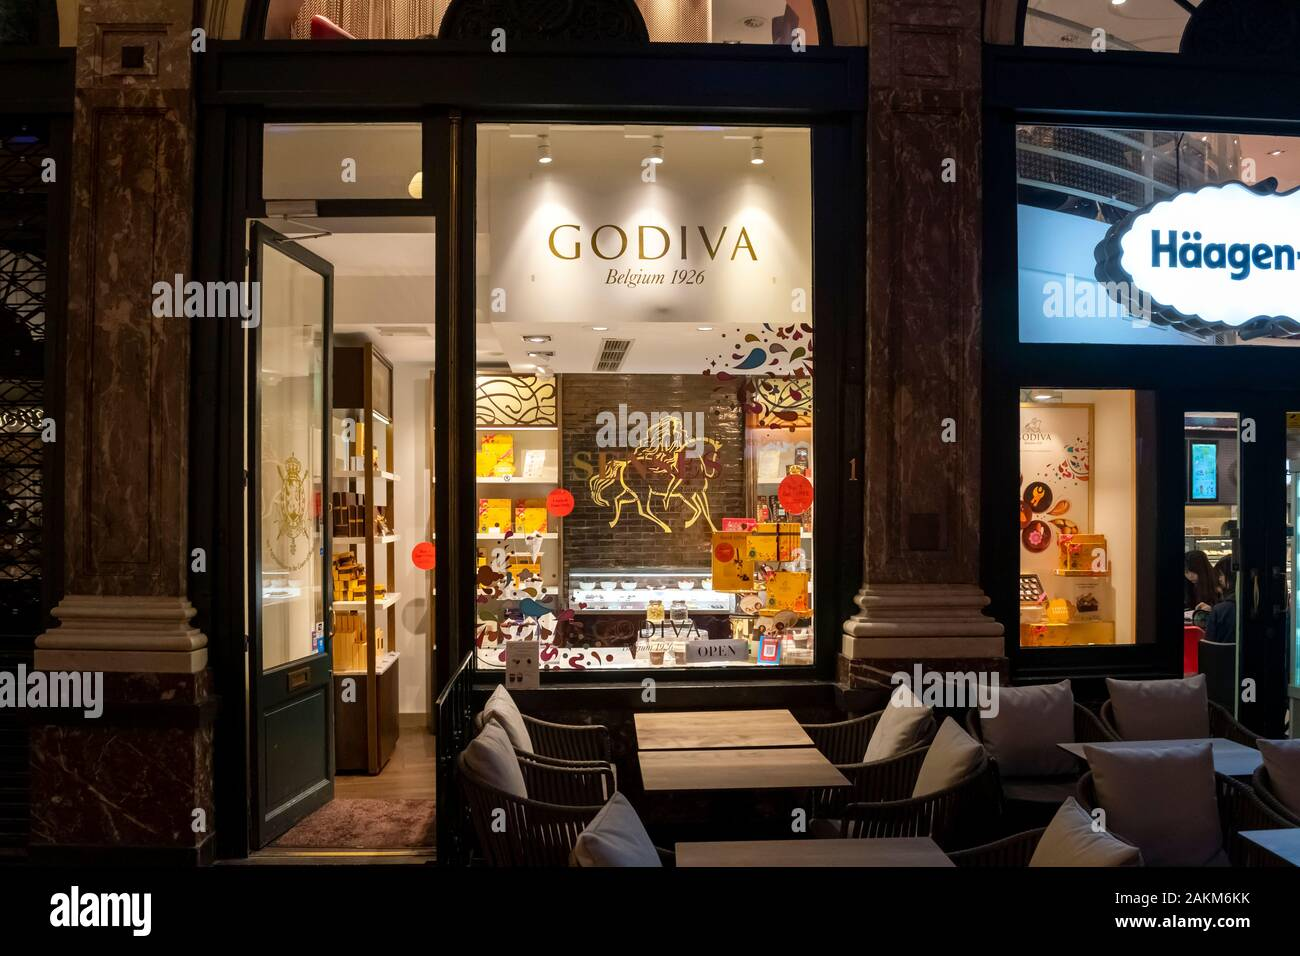 A retail Godiva Chocolate shop storefront in the indoor Galeries Royales Saint-Hubert shopping mall in Brussels Belgium. Stock Photo